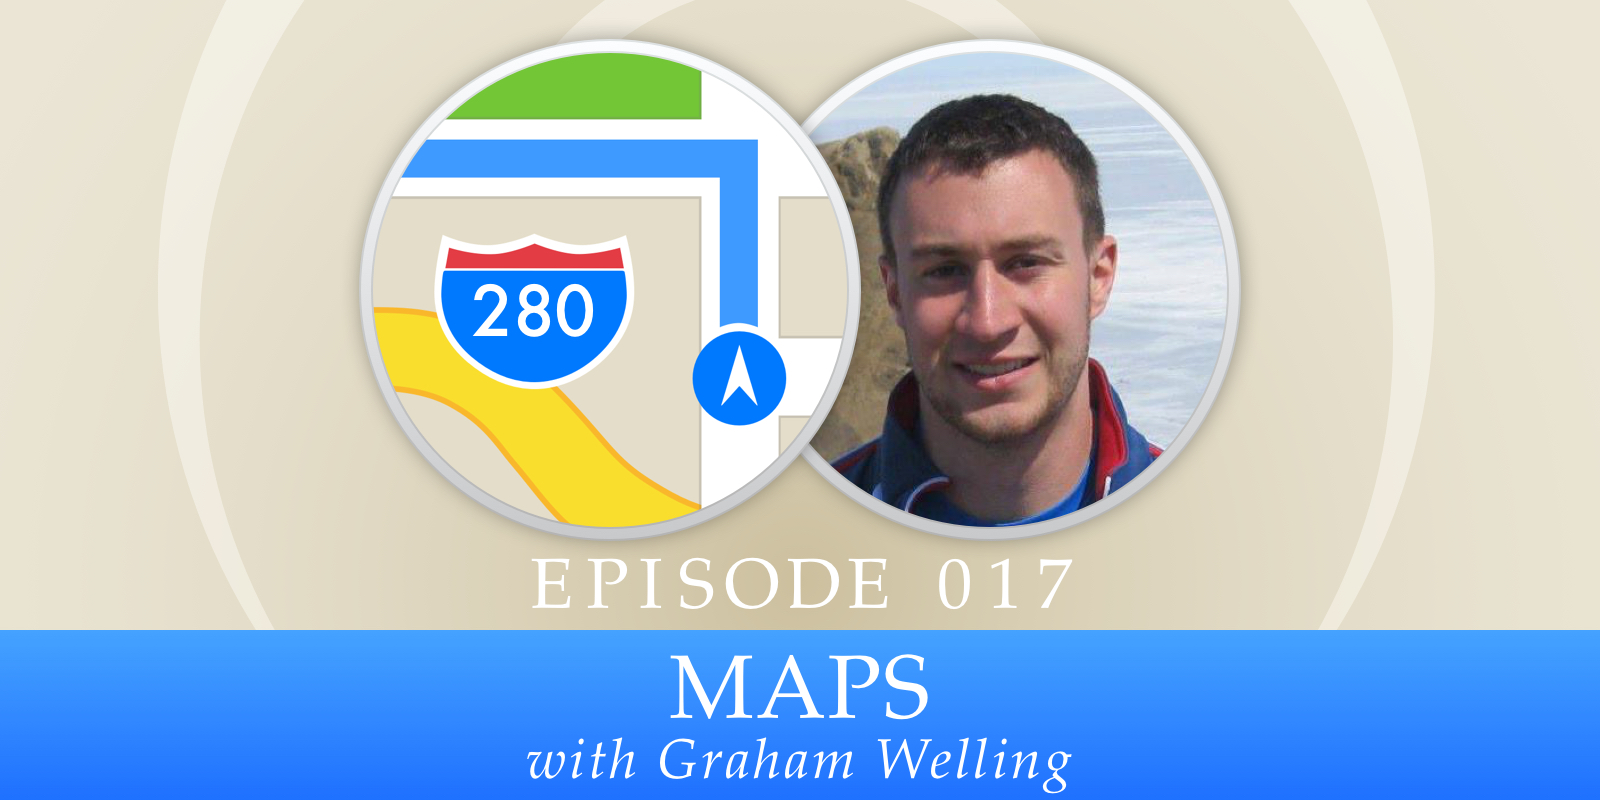 all-of-the-above-episode-017-maps-with-graham-welling.jpg